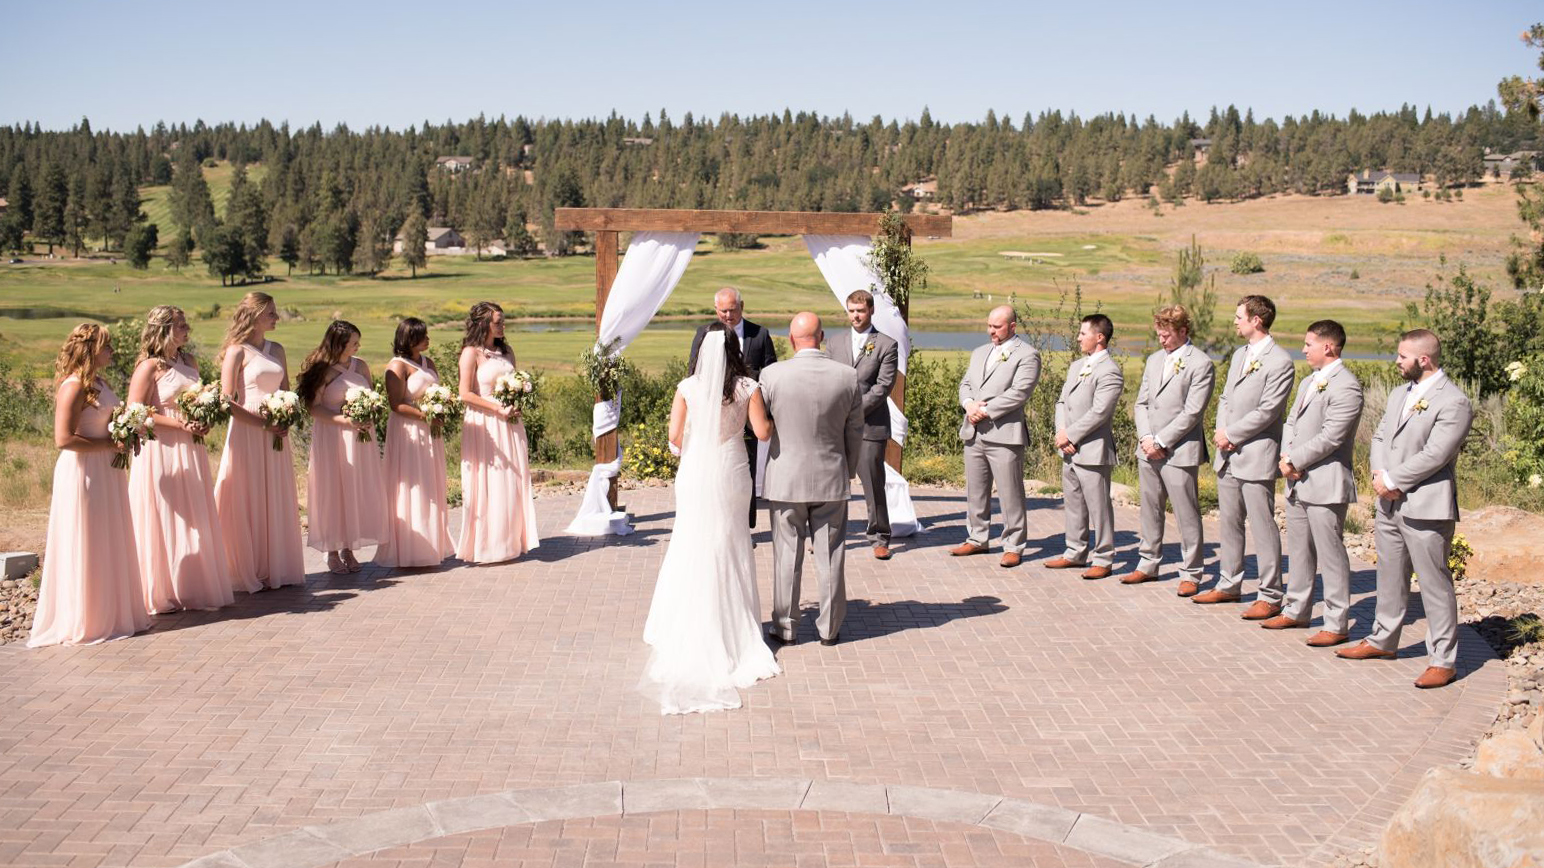 Running Y Ranch receives 2019 Couples' Choice Award from Wedding Wire, Inc. (Image: RunningY.com)